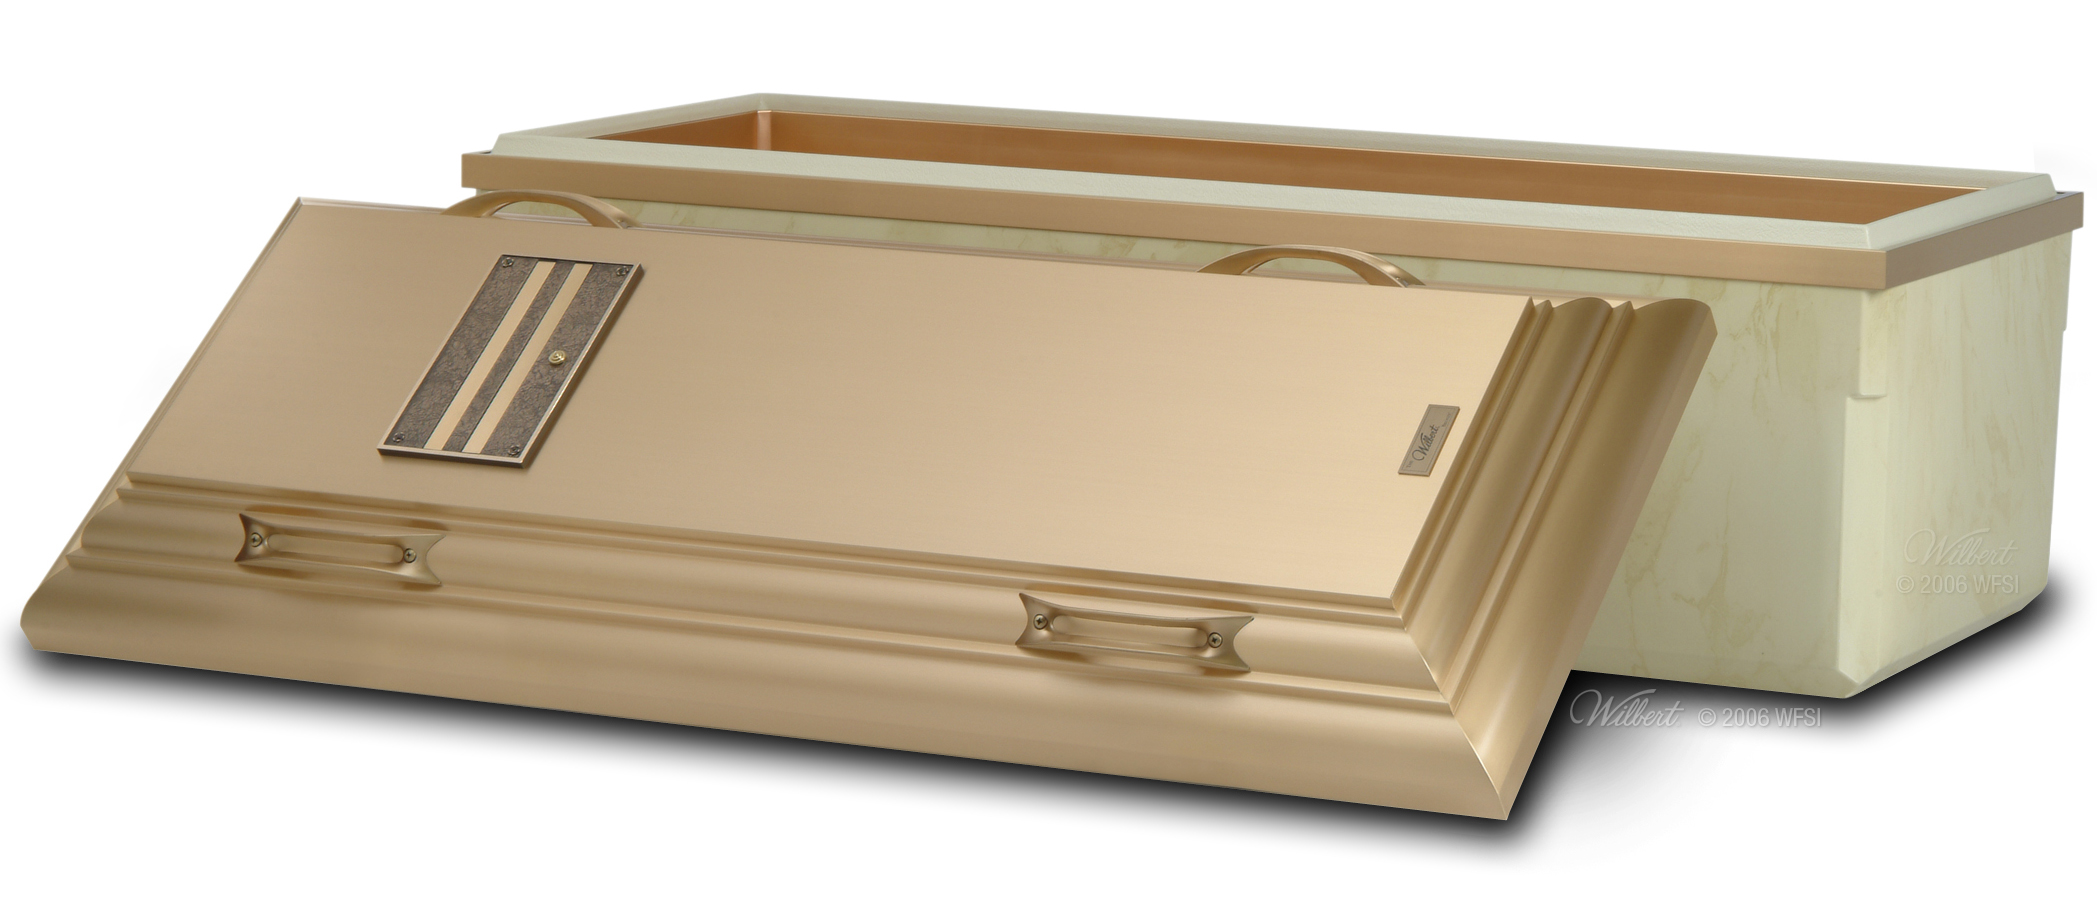 Burial Vaults | Vault Options | Personalized Burial Vaults